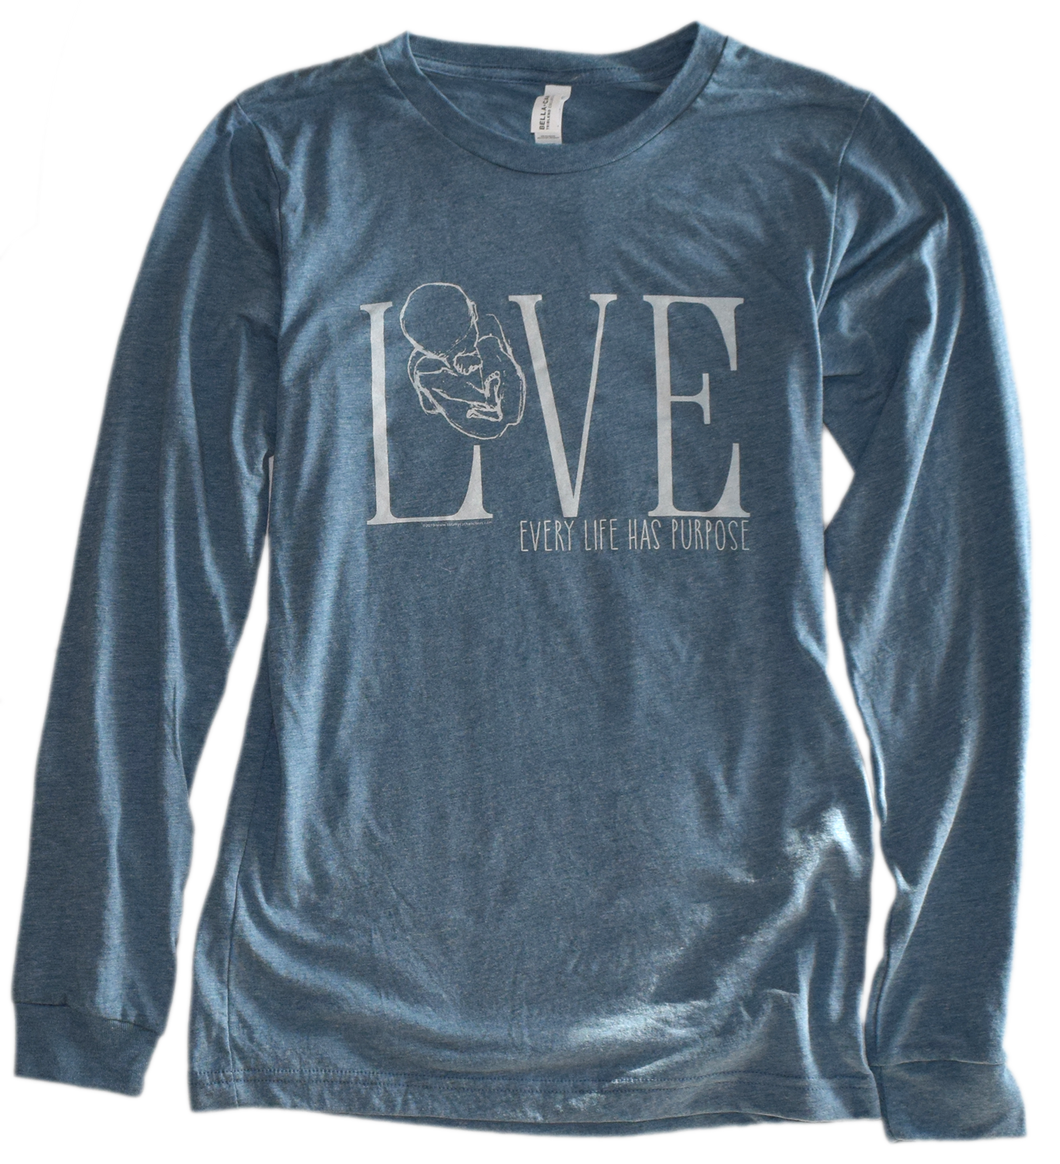 LOVE-Pro Life Tri-Blend Premium Long Sleeve Tee, LIMITED SEASONAL SUPPLY